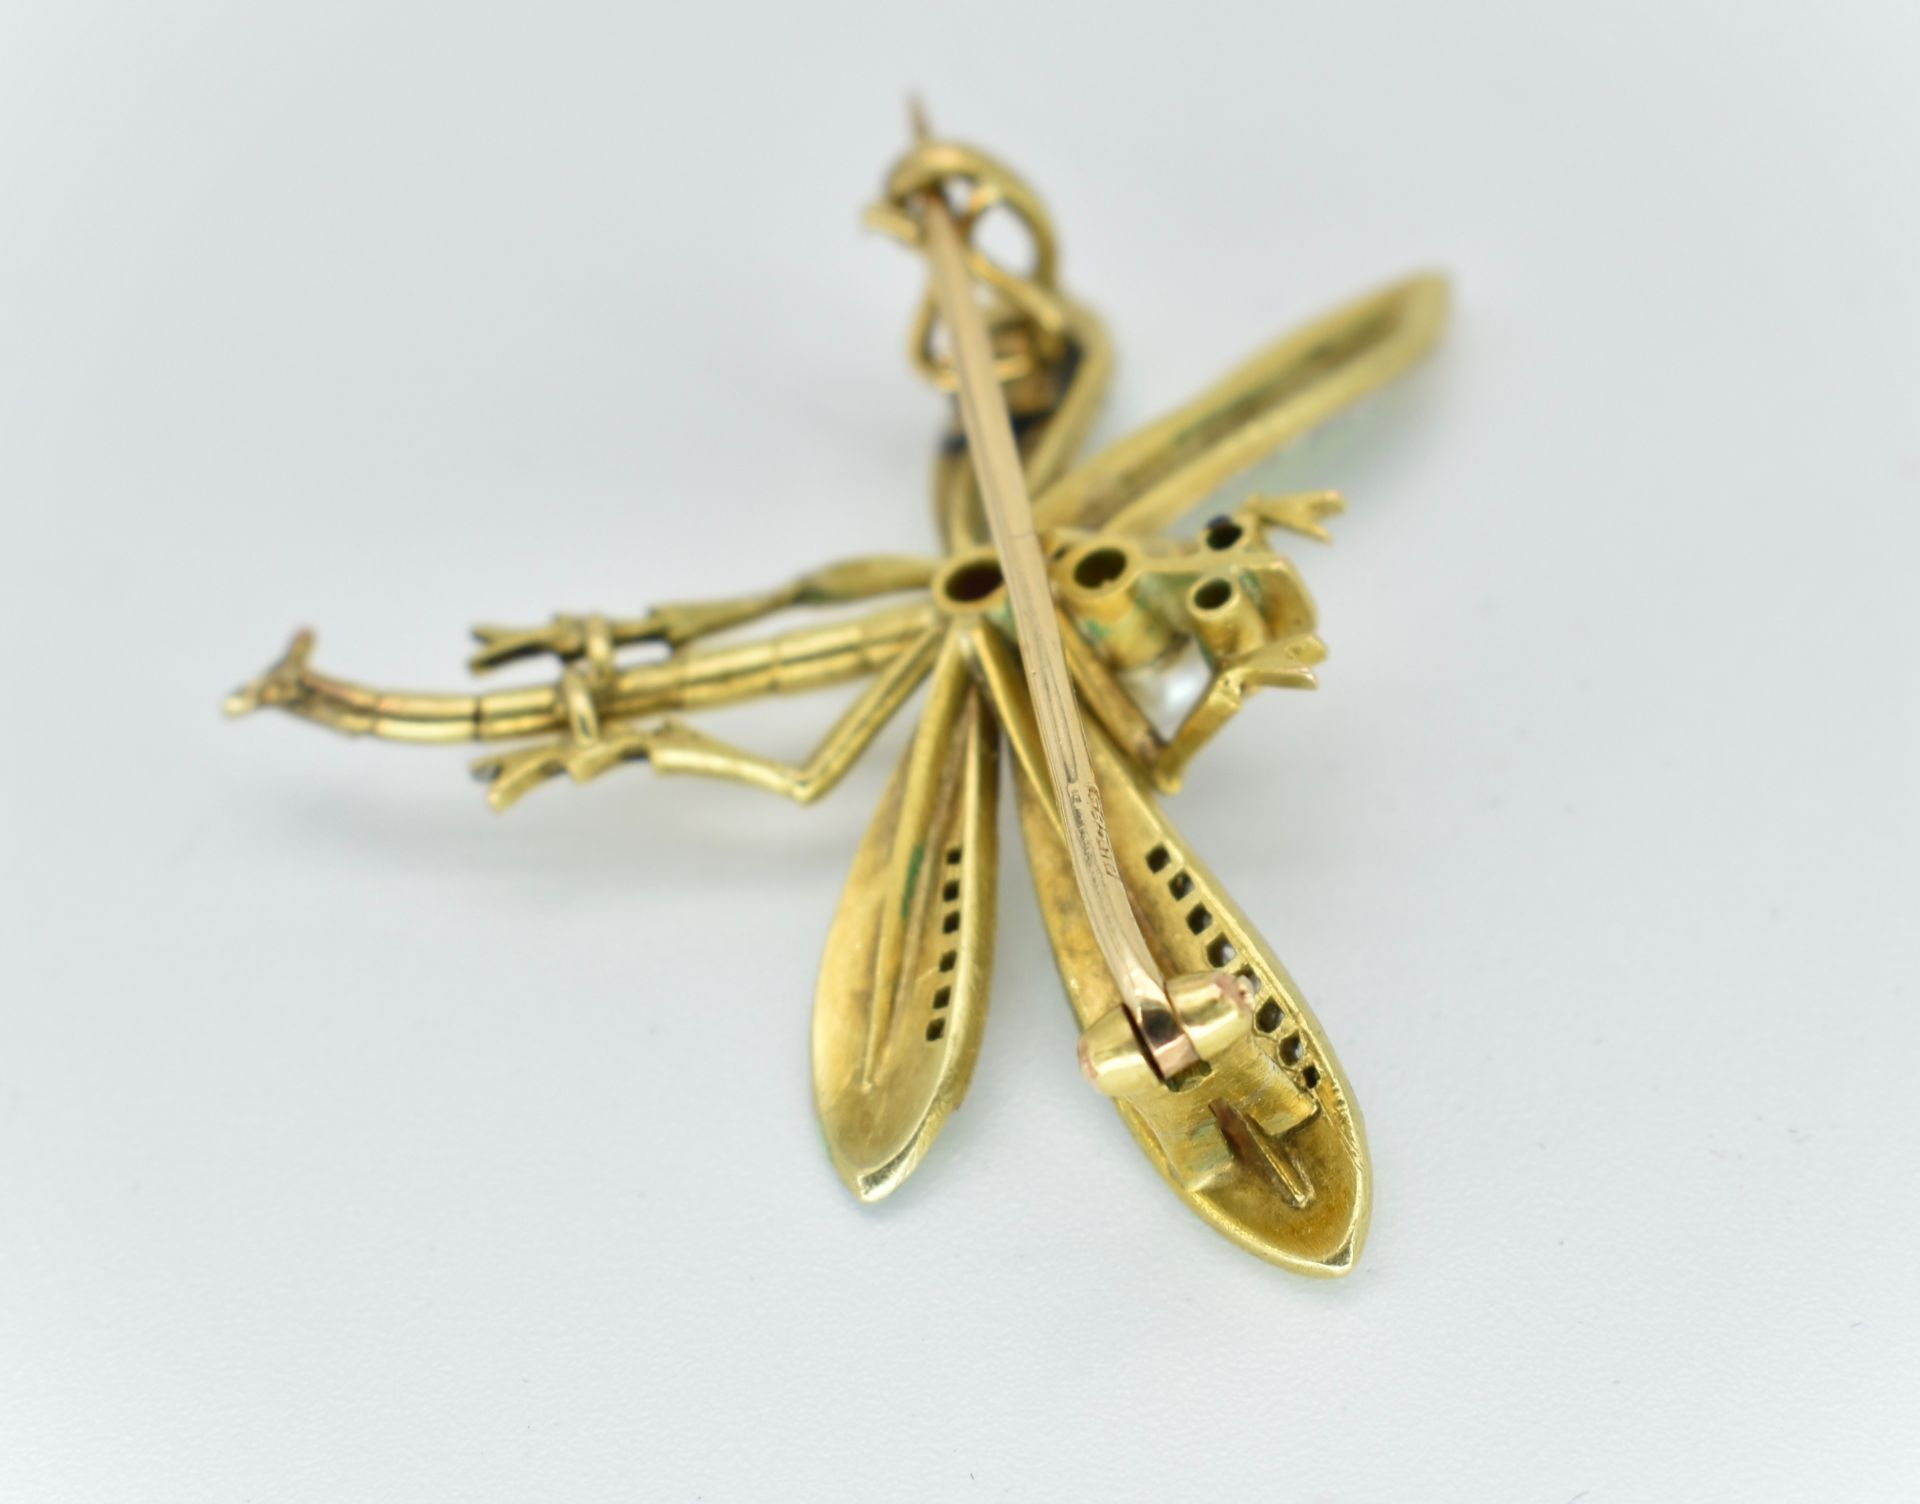 14ct Gold Ruby Diamond & Pearl Dragonfly Brooch - Image 5 of 5